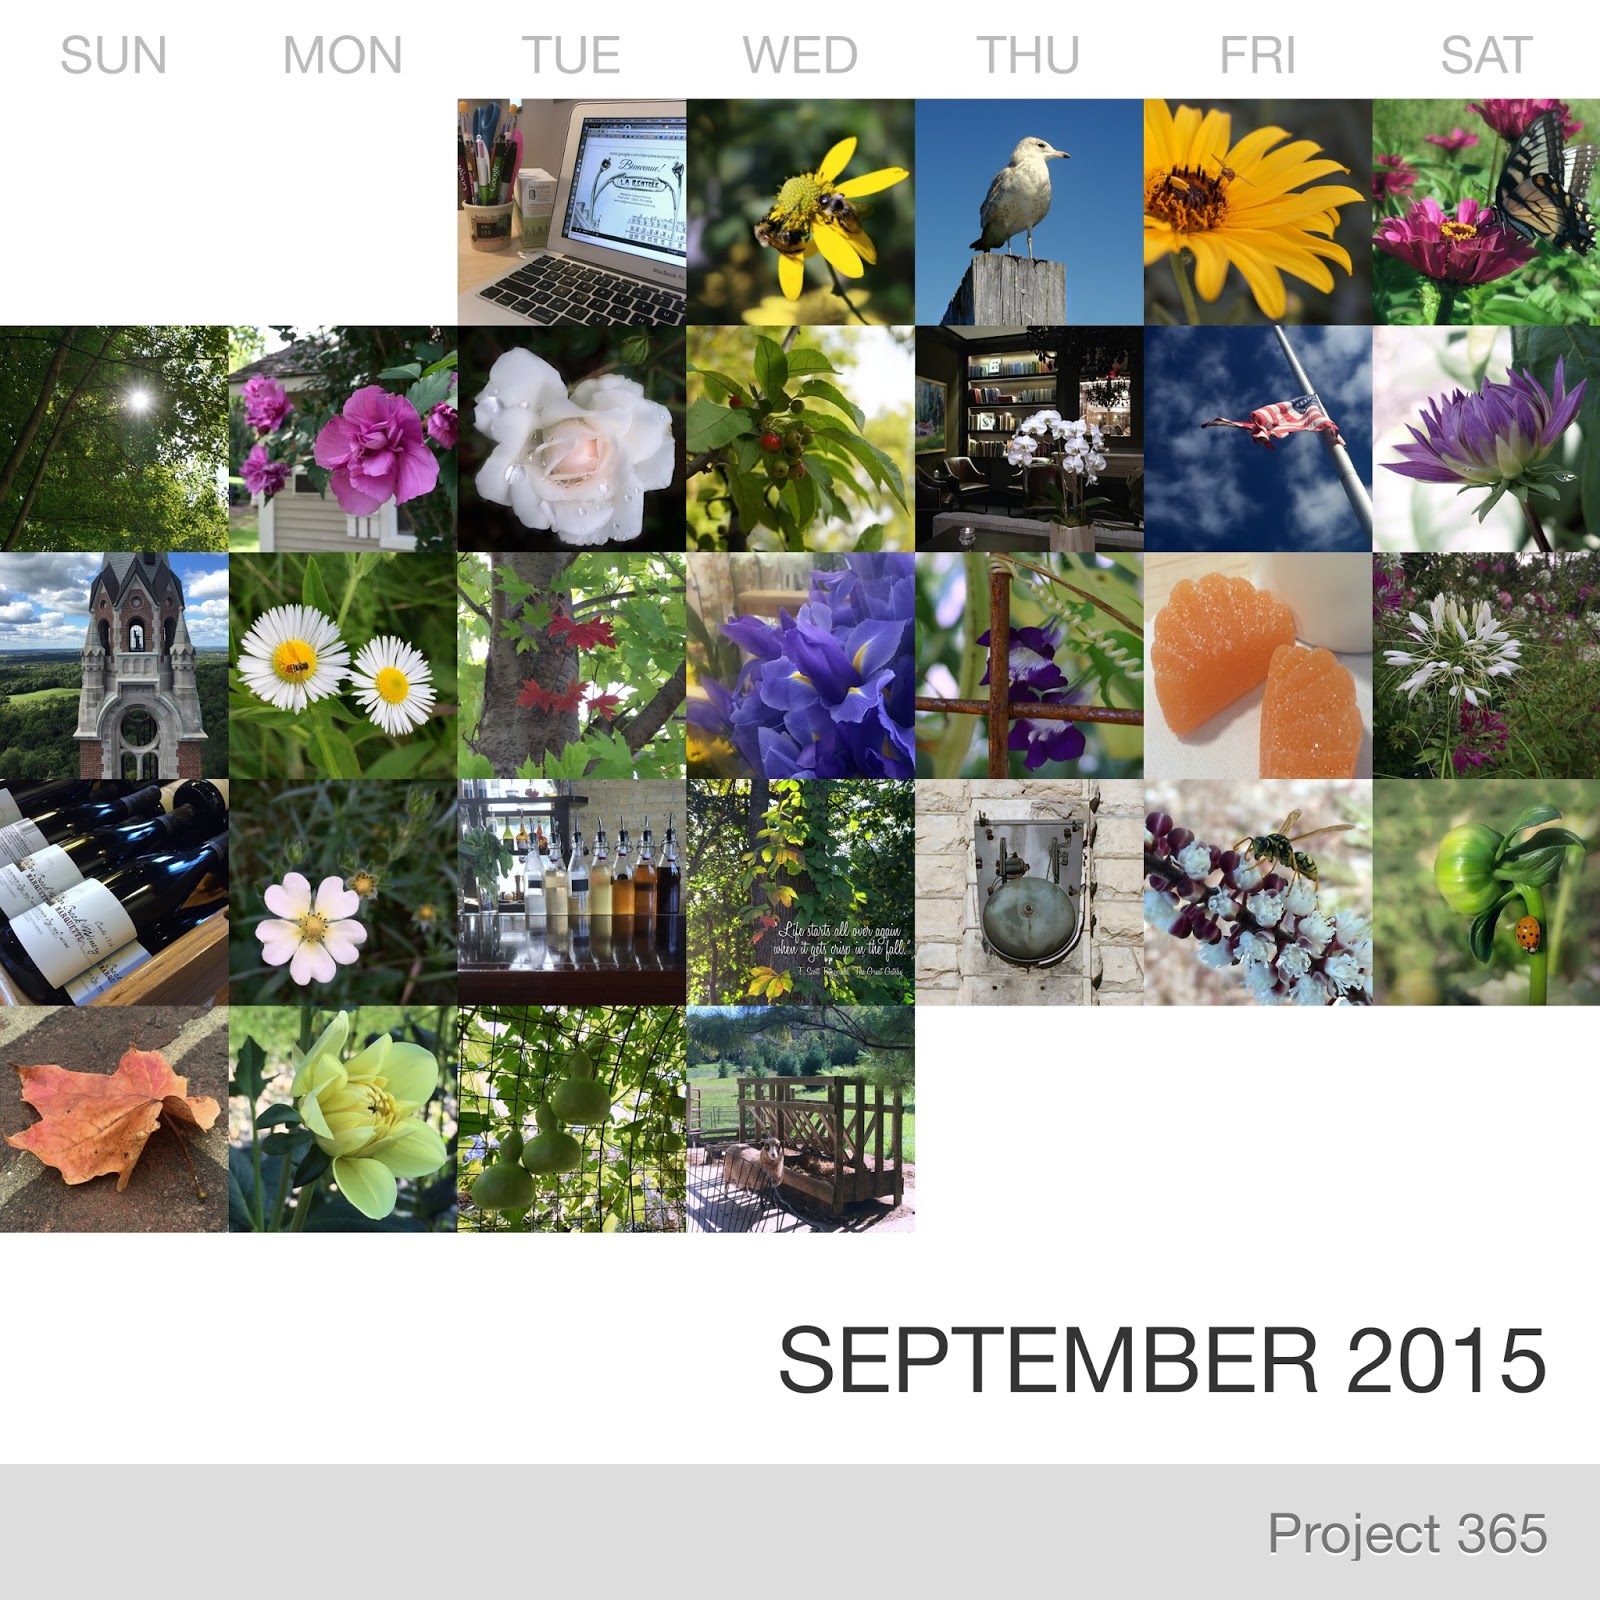 Project 365 _September-2015_Collage.jpg